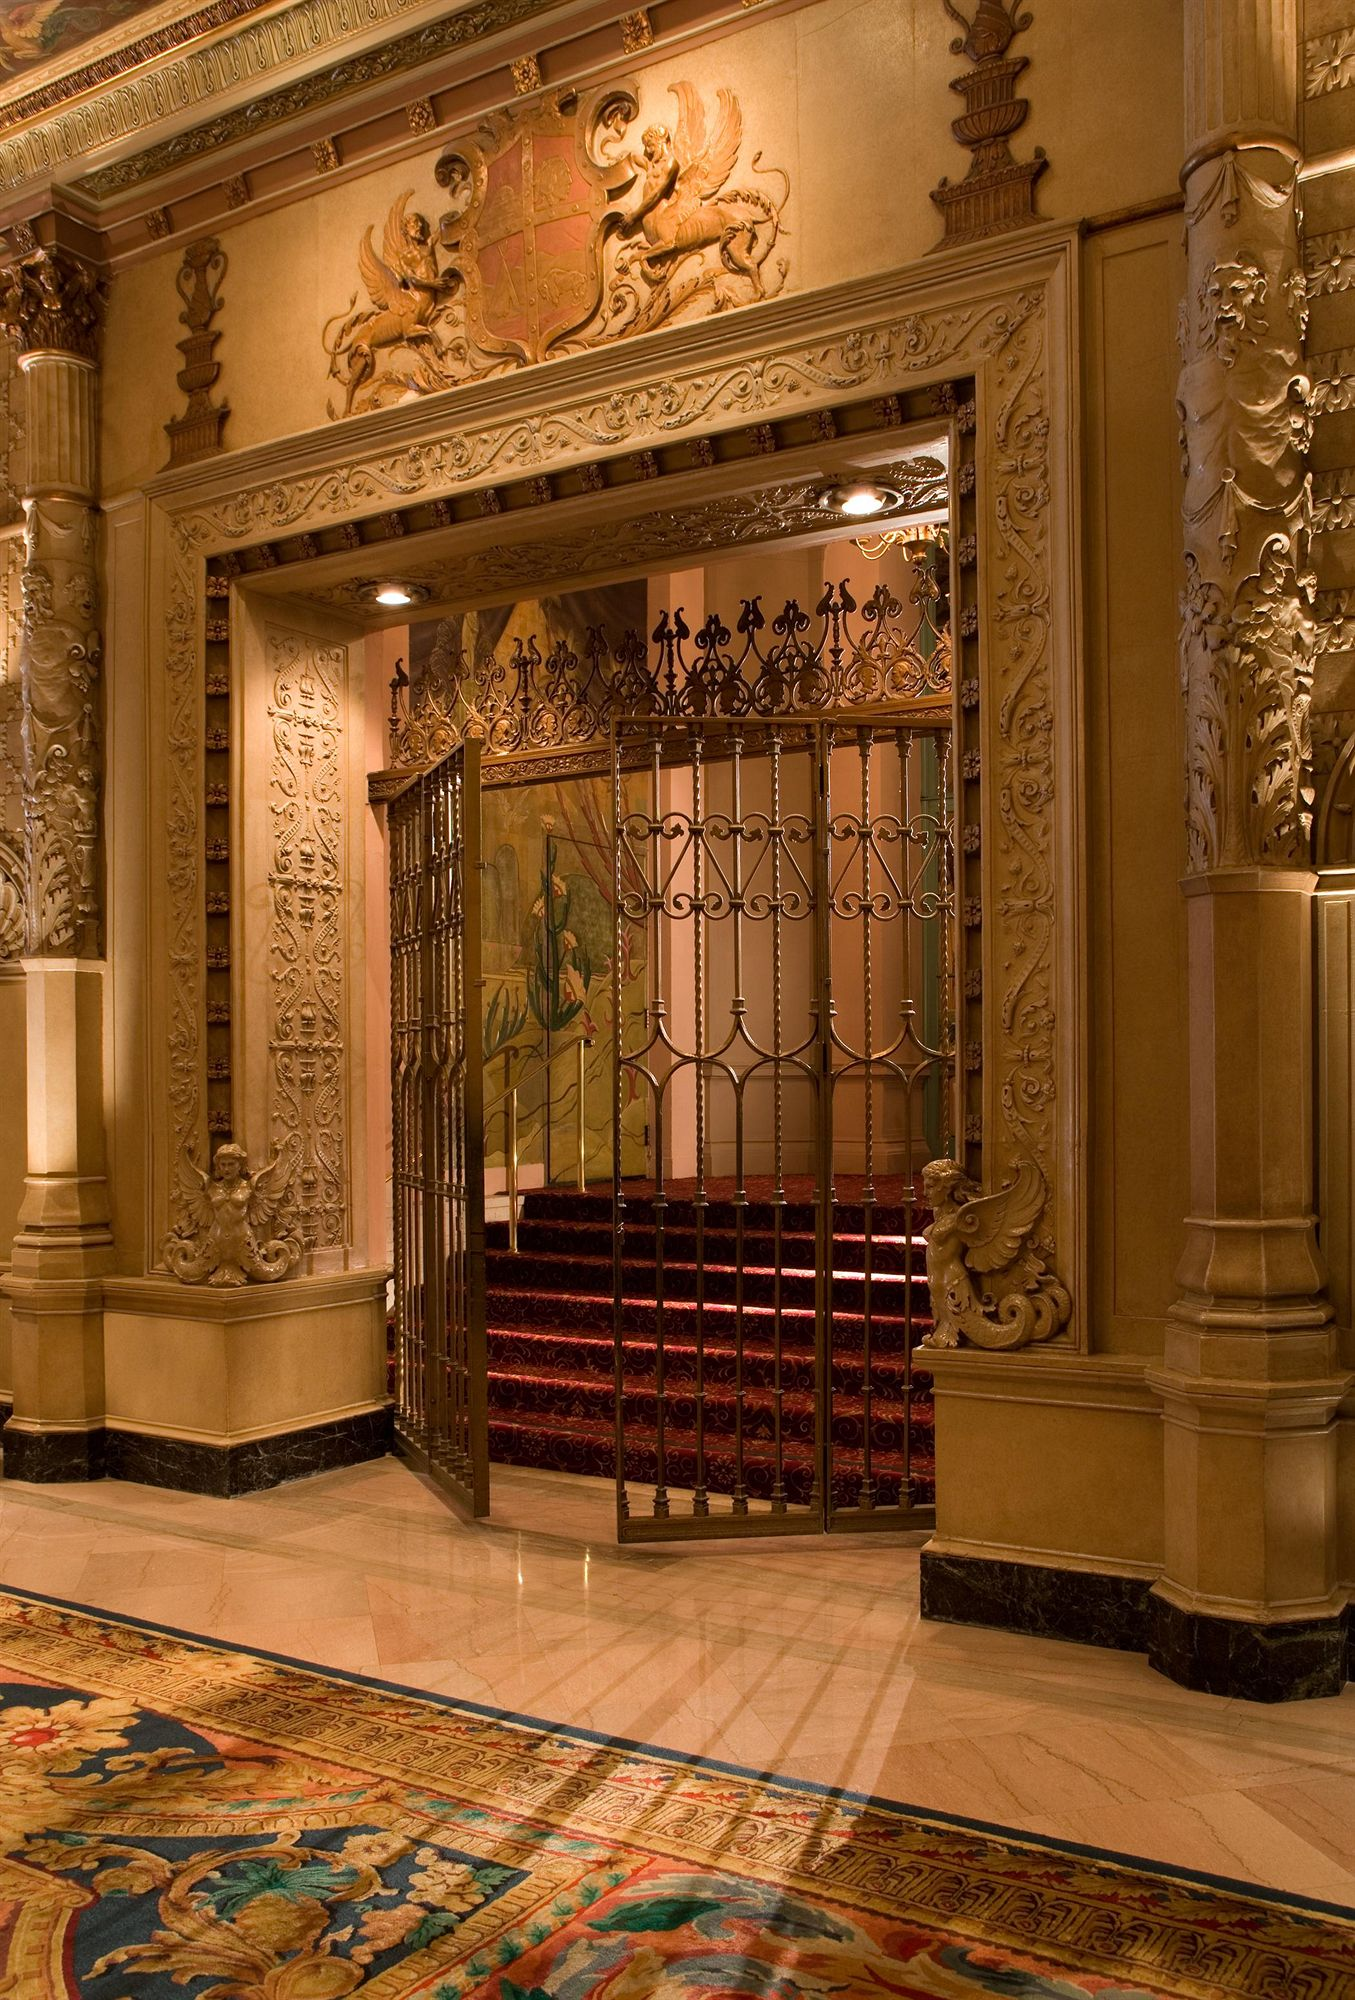 Discount Coupon for Millennium Biltmore Hotel Los Angeles